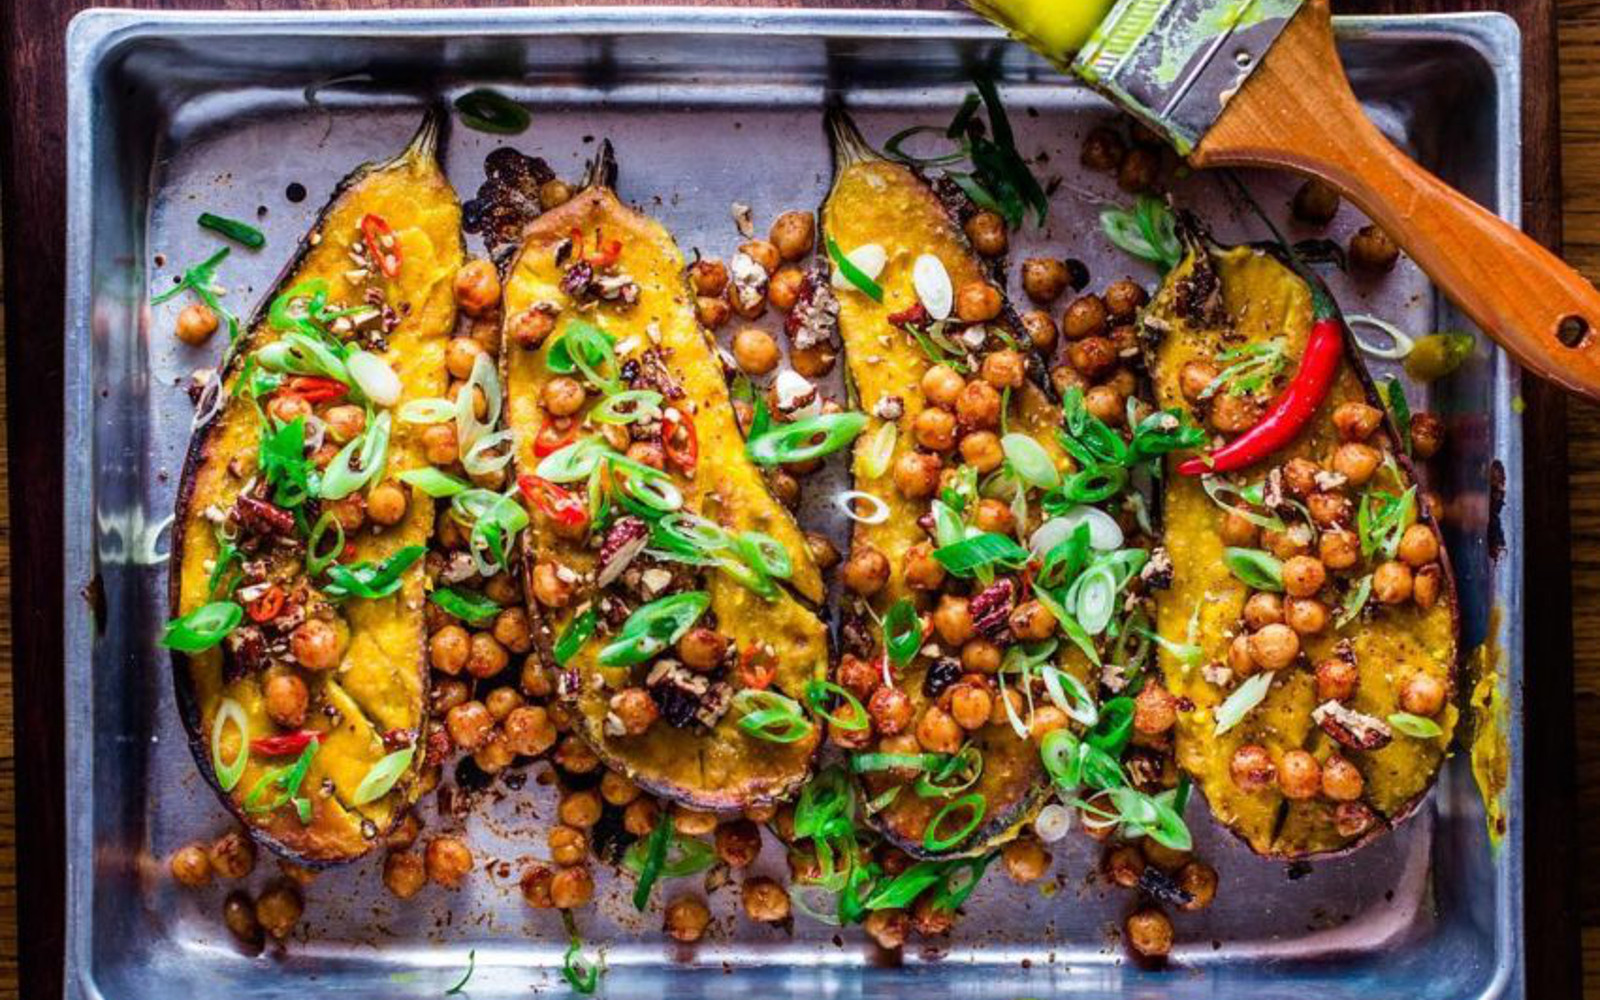 Weekly Meal Plan: Delicious Plant-Based Meals with Umami Flavor!